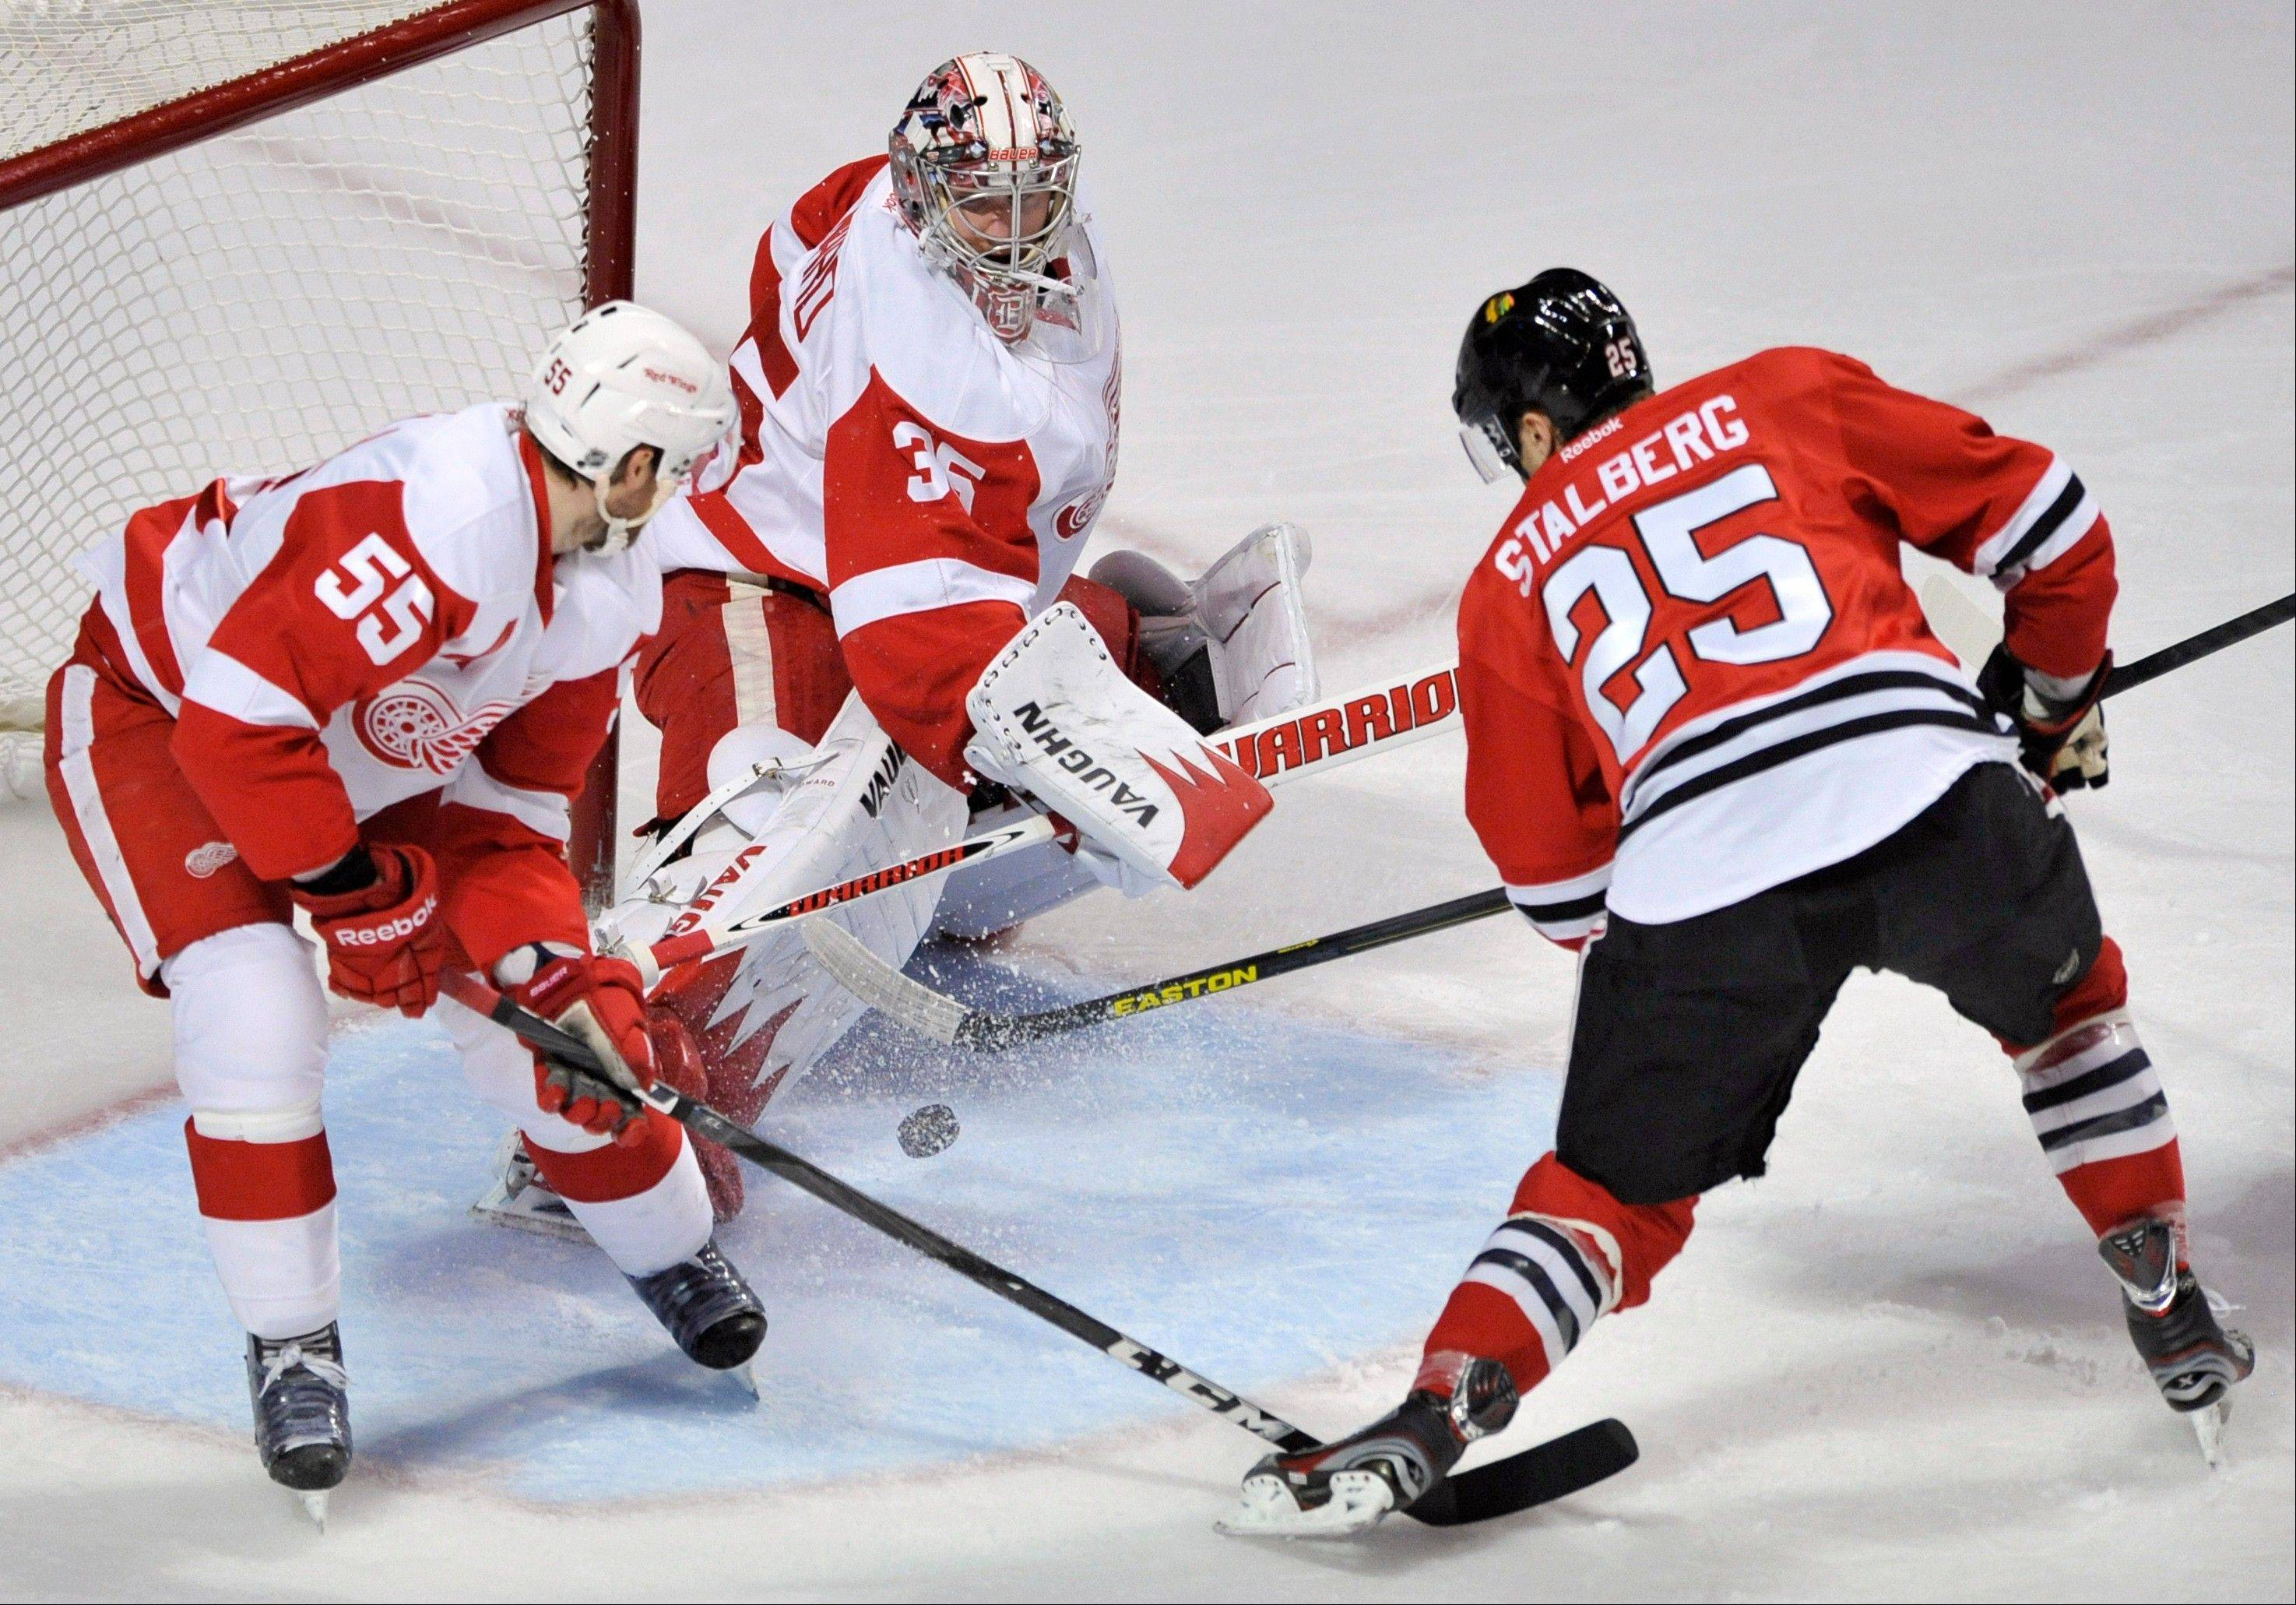 Chicago Blackhawks' Viktor Stalberg (25), of Sweden, shoots on-goal against Detroit Red Wings' Niklas Kronwall (55), also of Sweden, and goalie Jimmy Howard during the first period of an NHL hockey game in Chicago, Friday, April 12, 2013. (AP Photo/Paul Beaty)